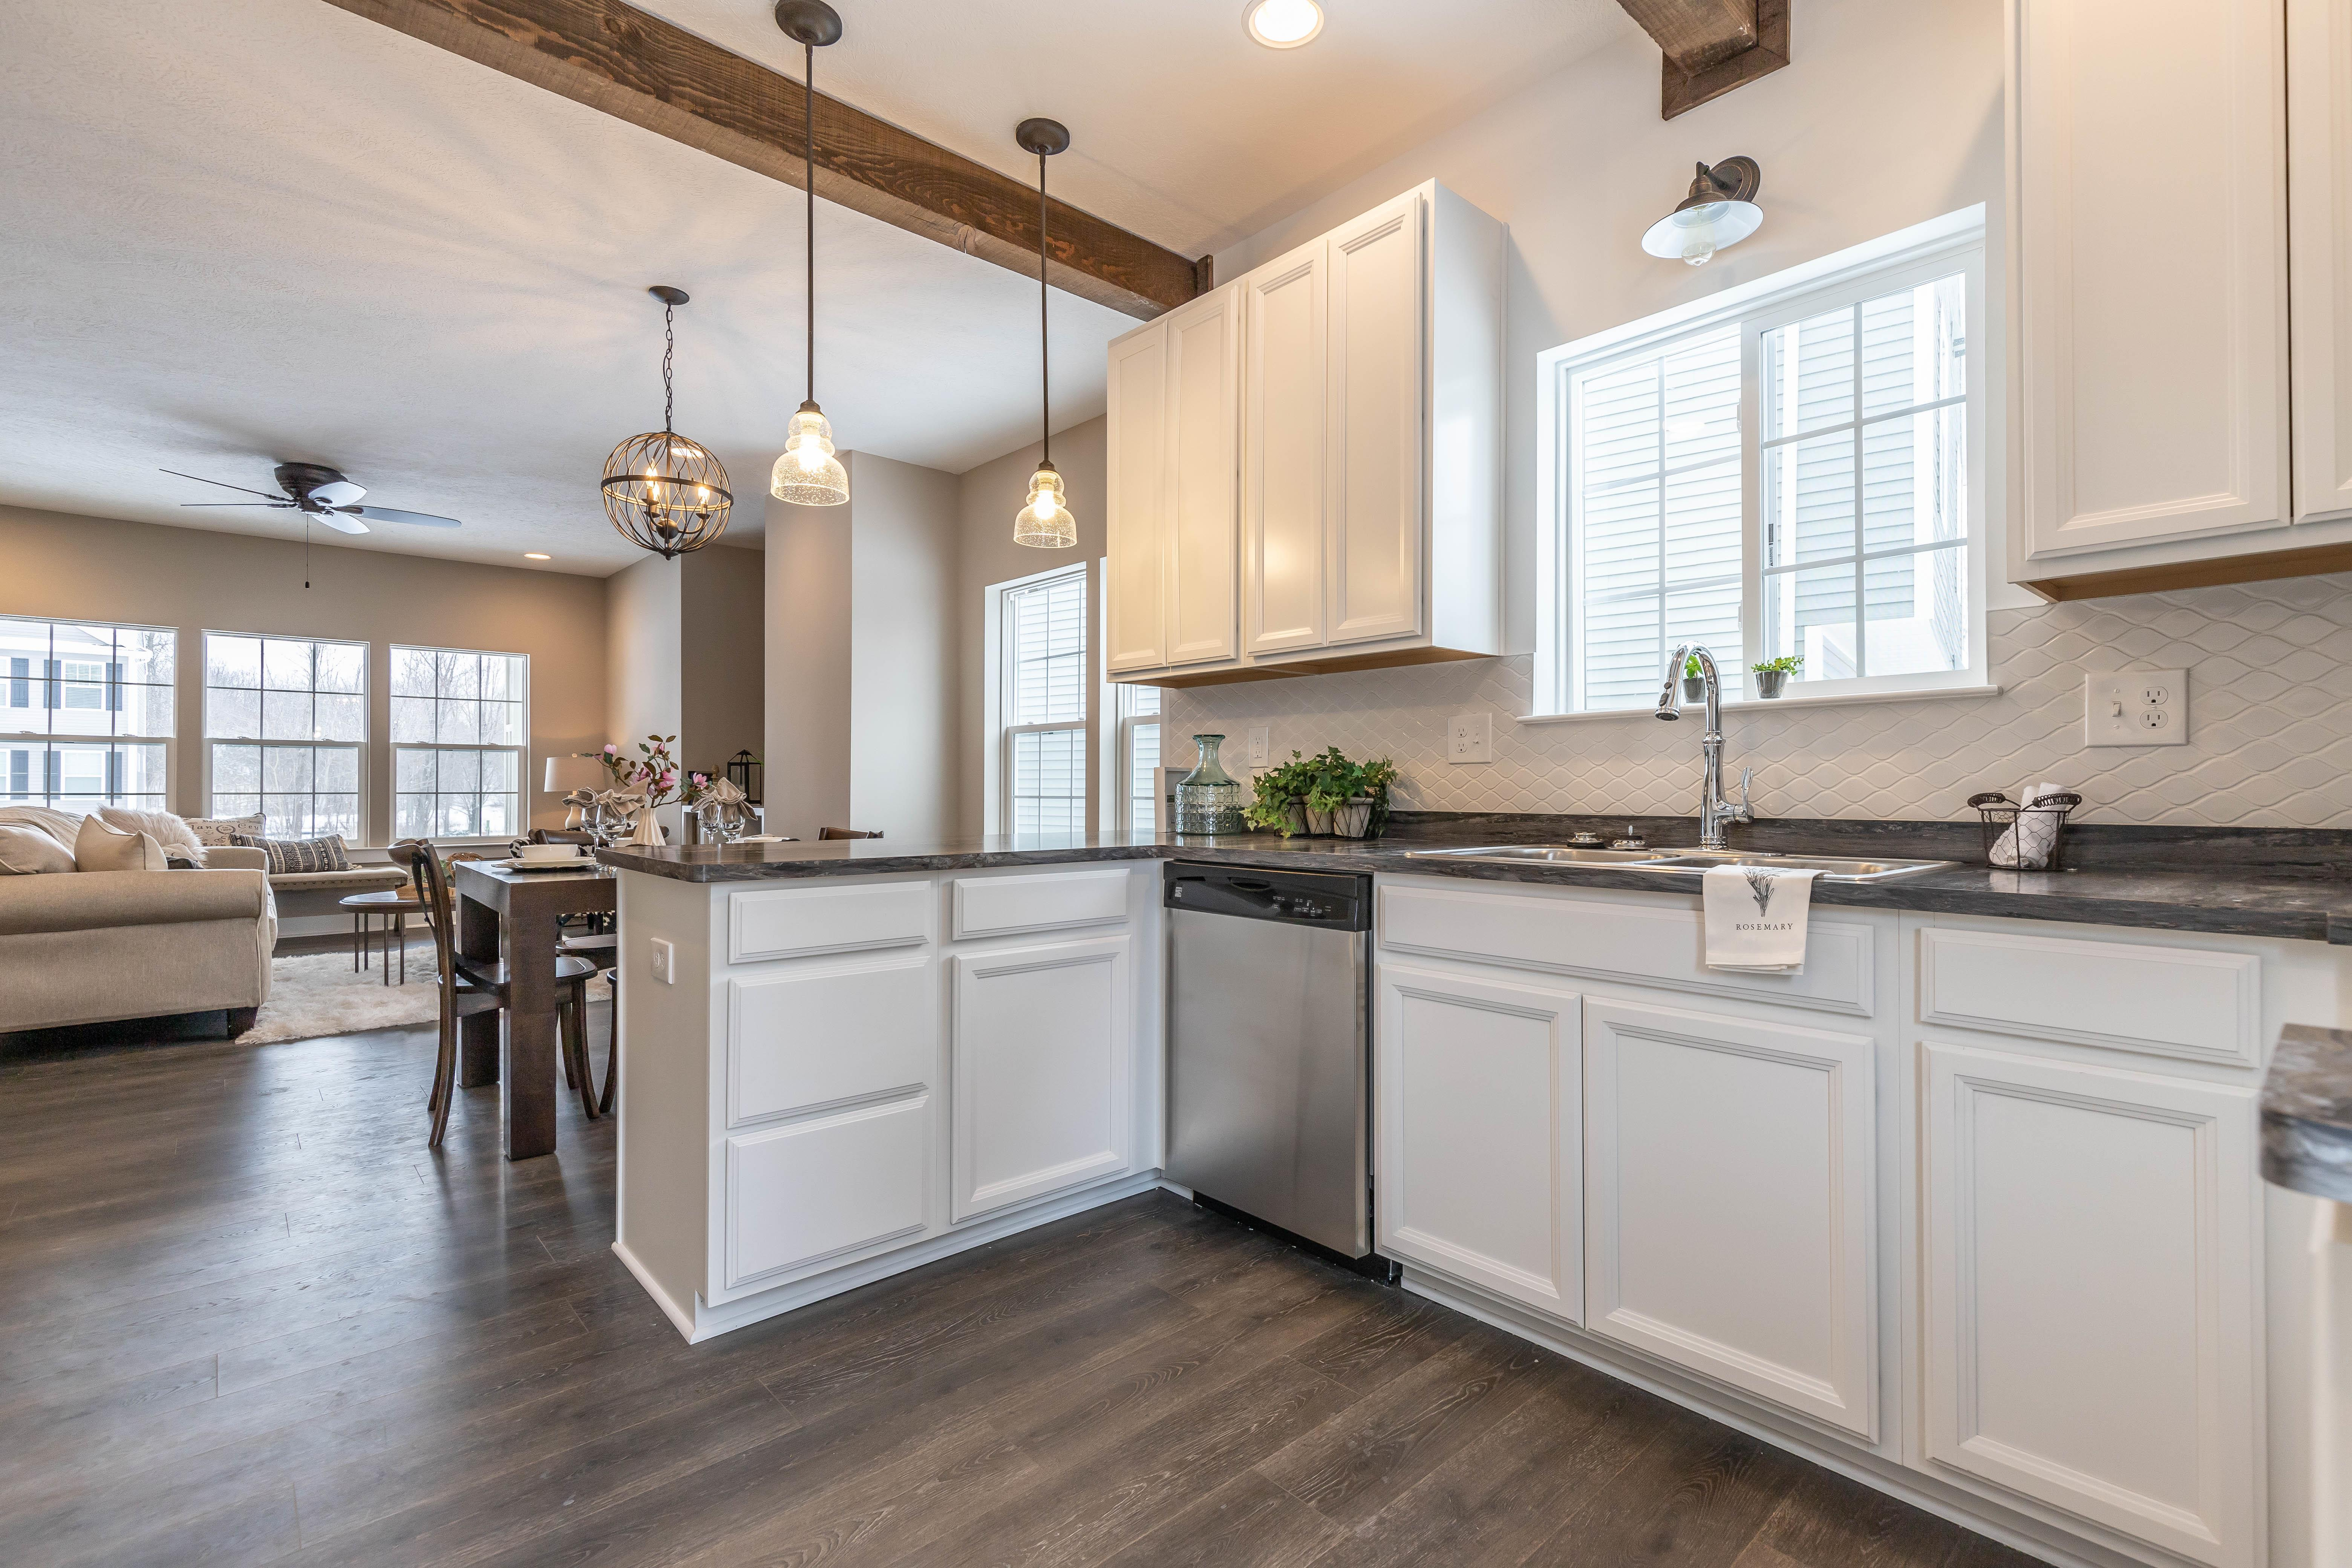 Kitchen featured in the Taylor By CVE Homes in Jackson, MI